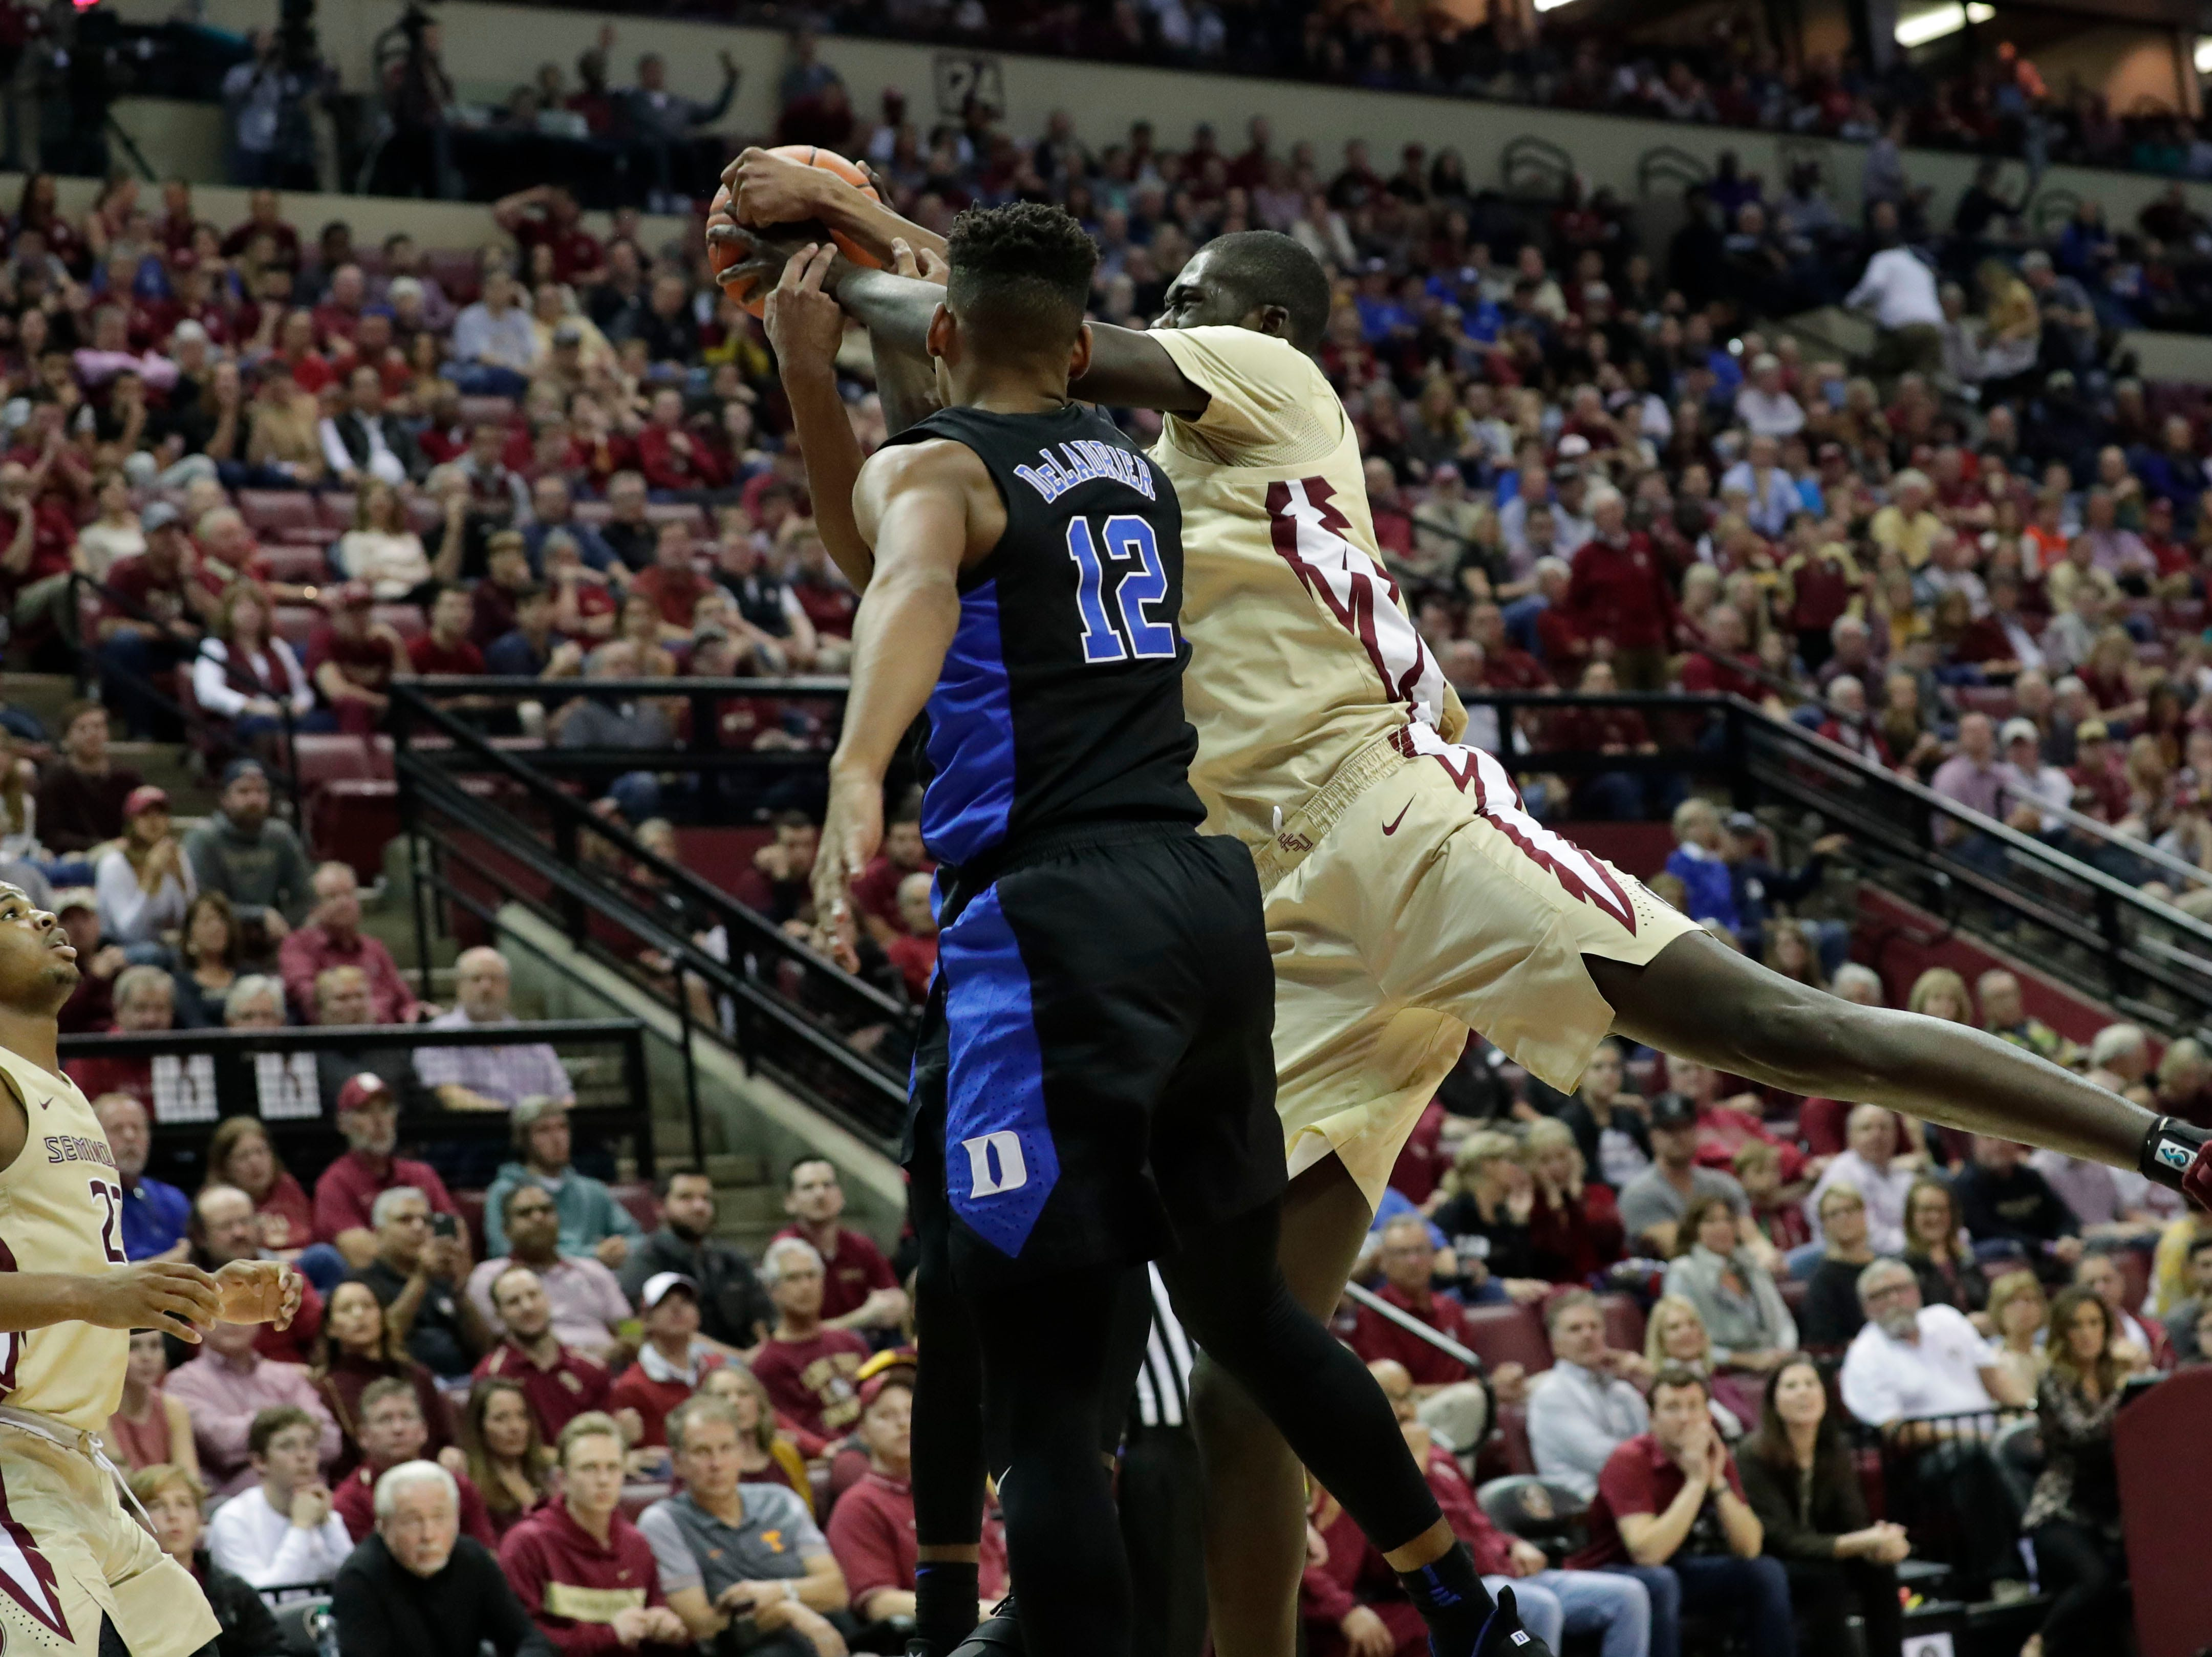 Ranked 13 in the ACC, the Florida State Seminoles host the number 1 team, the Duke Blue Devils, at the Tucker Civic Center, Saturday, Jan. 12, 2019.